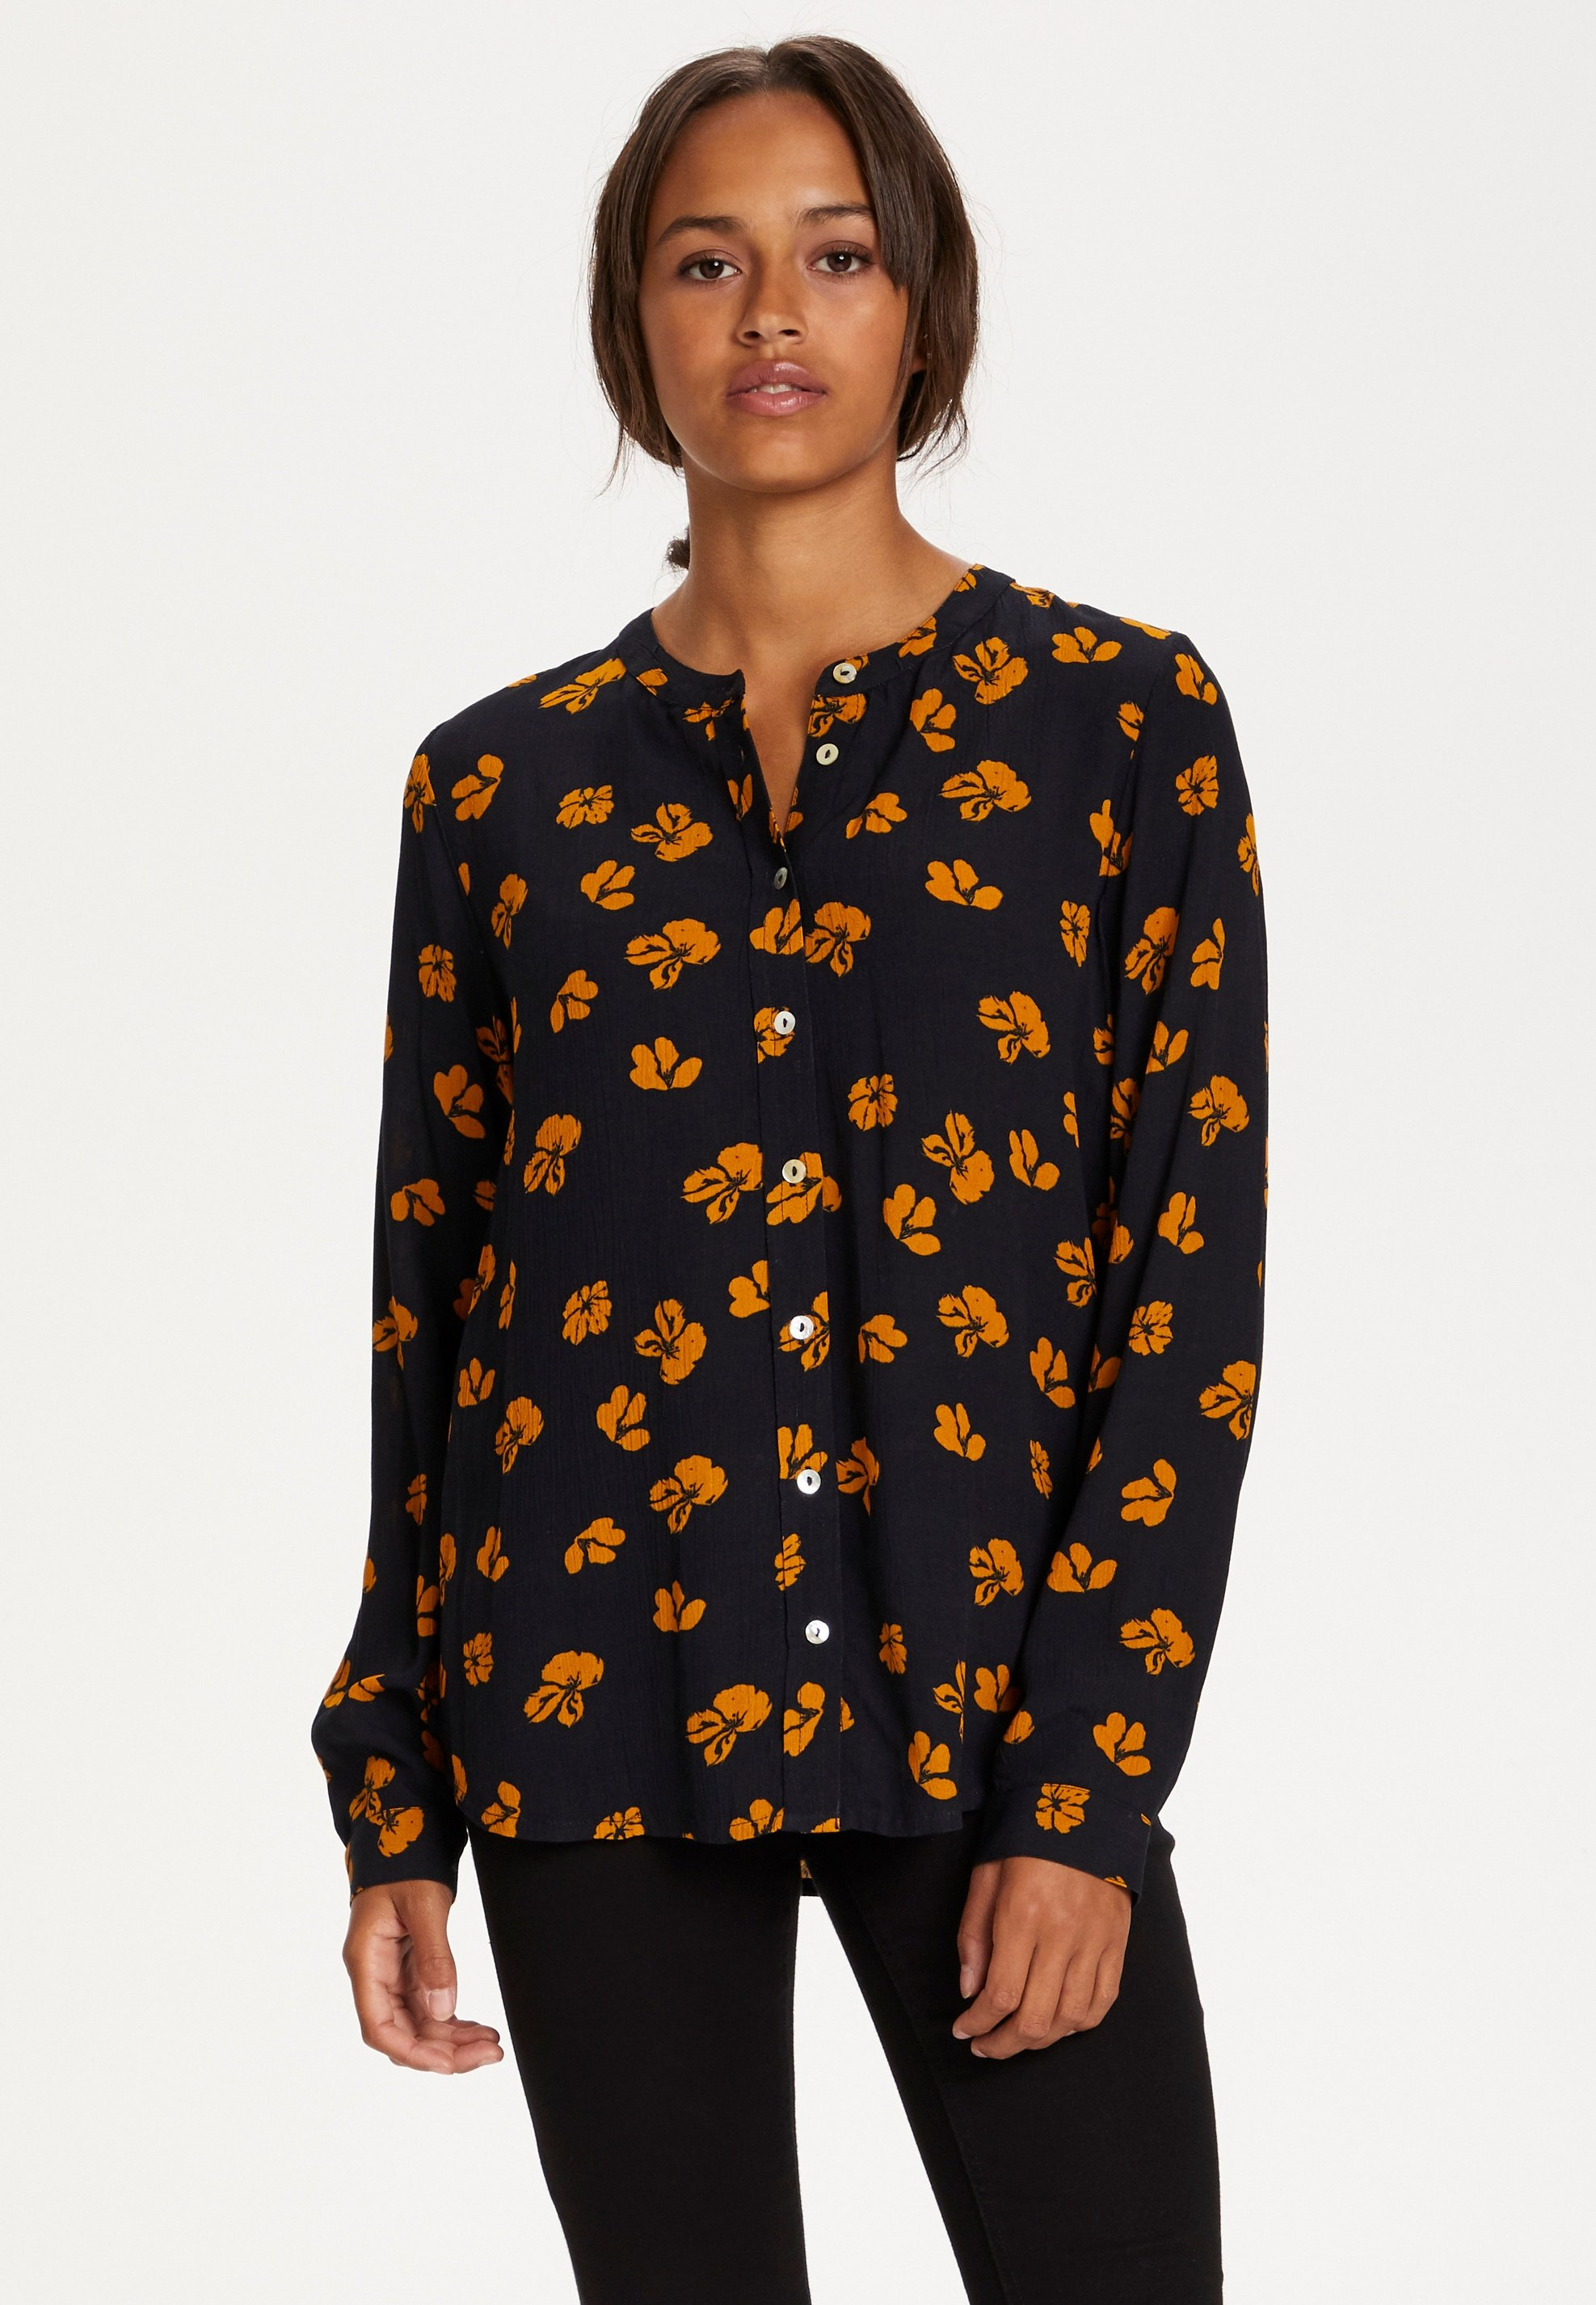 Kaffe KAAUBITTE - Blouse - black w. yellow flower - Dameskleding Uniseks